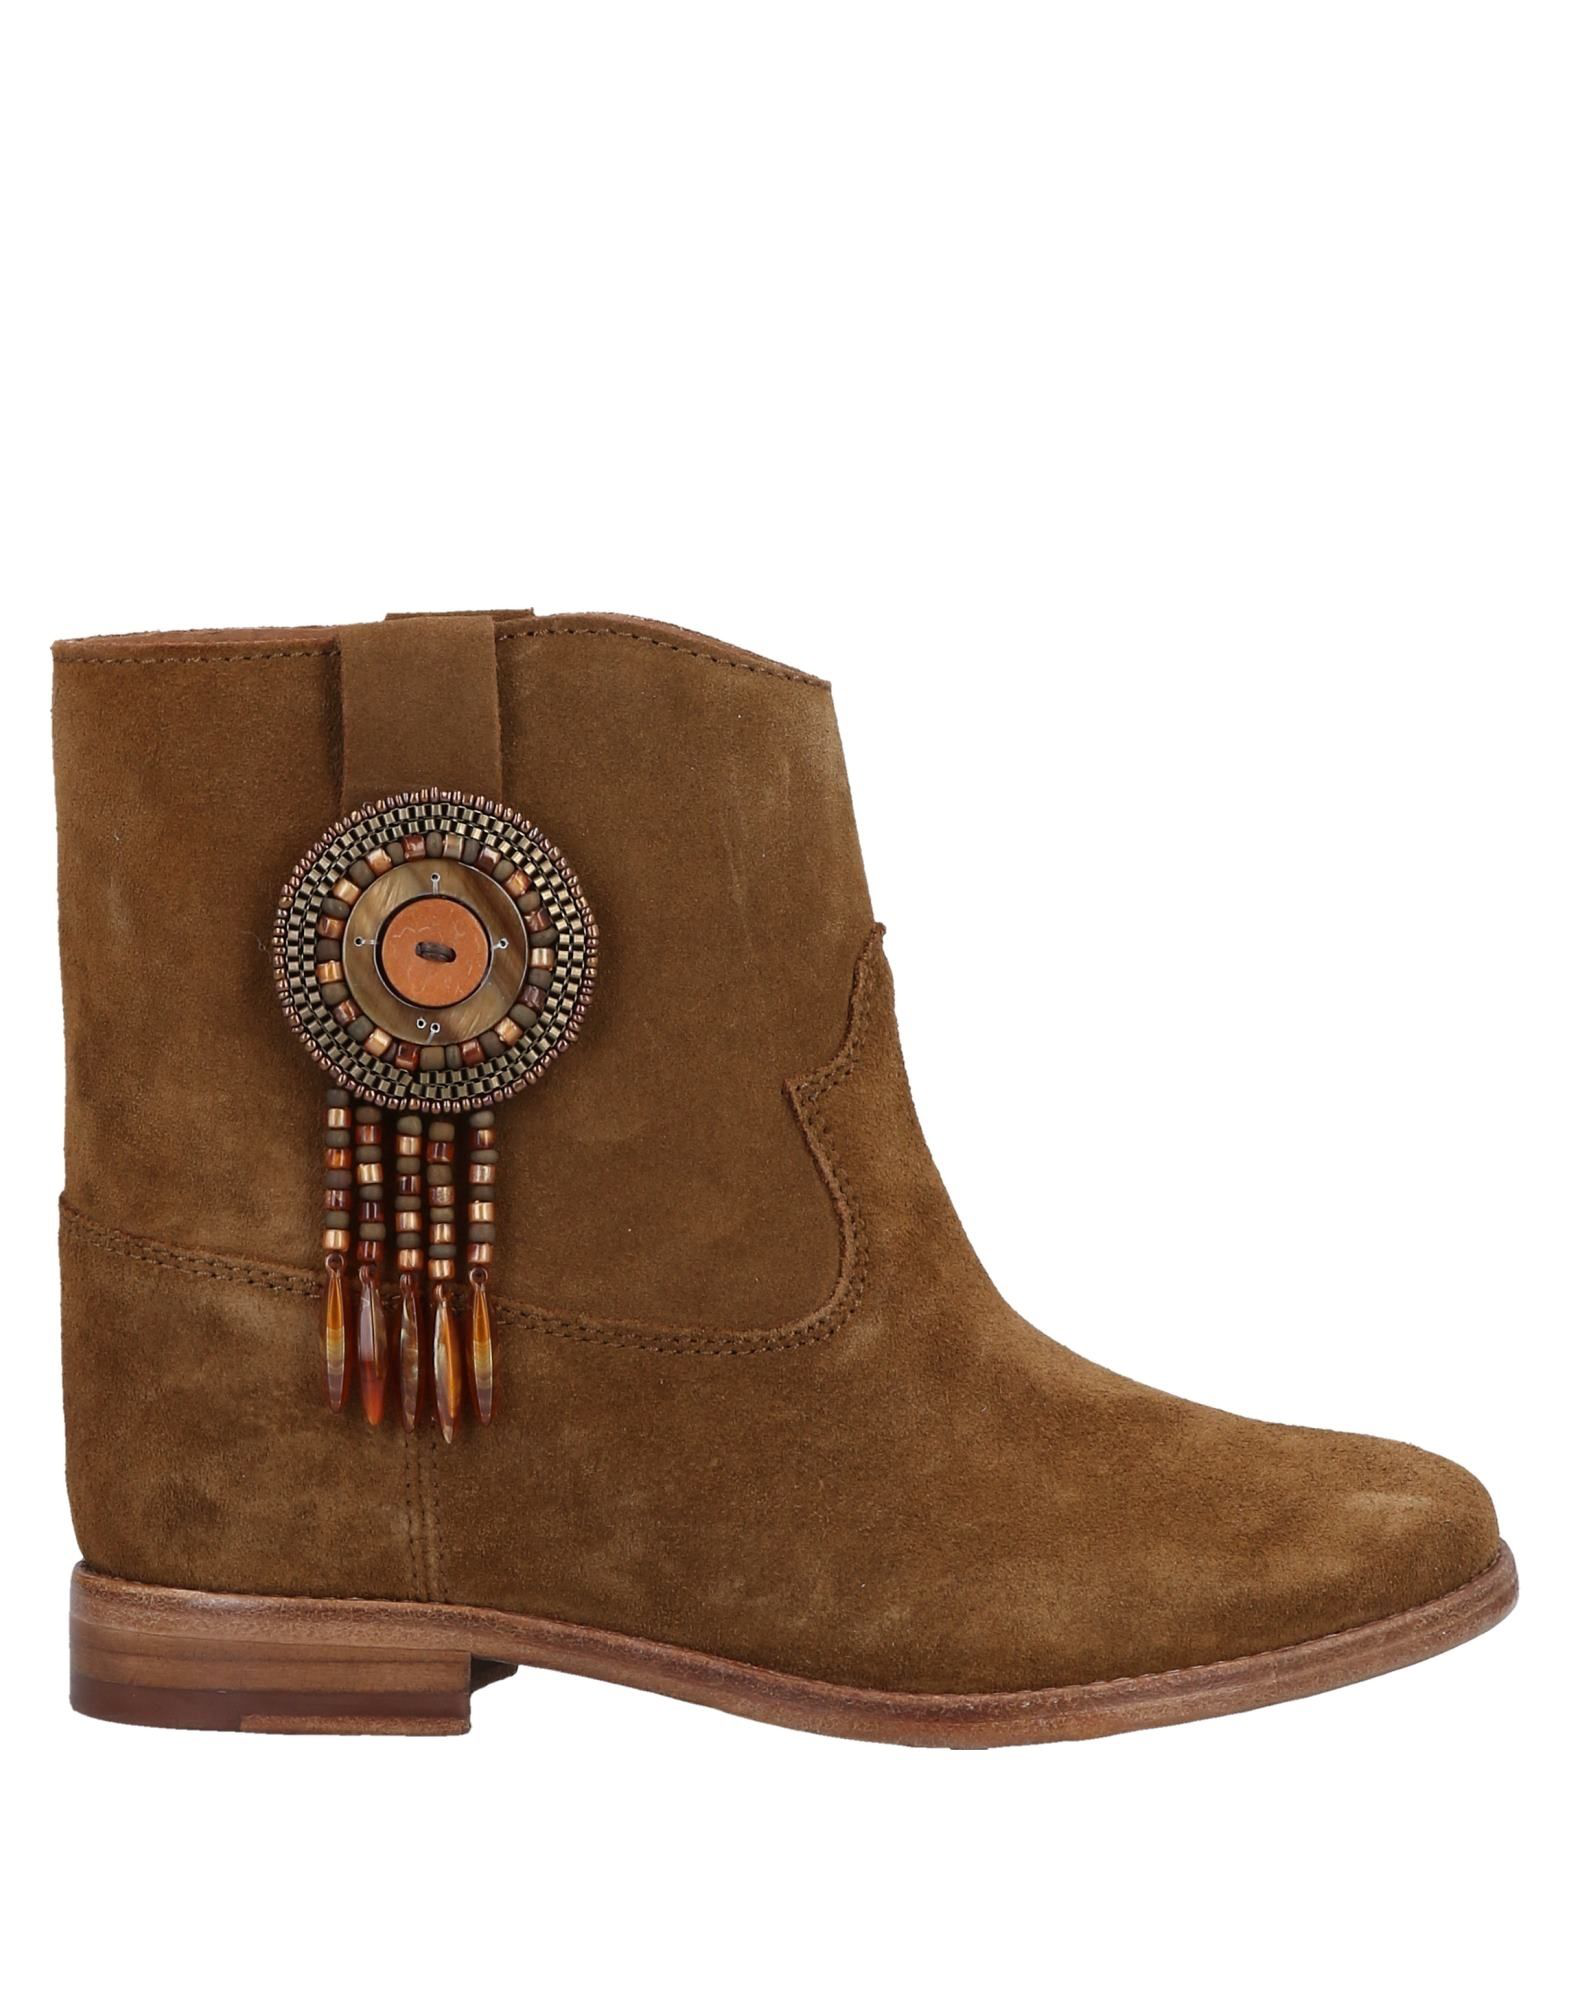 Catarina Martins Ankle Boot In Camel